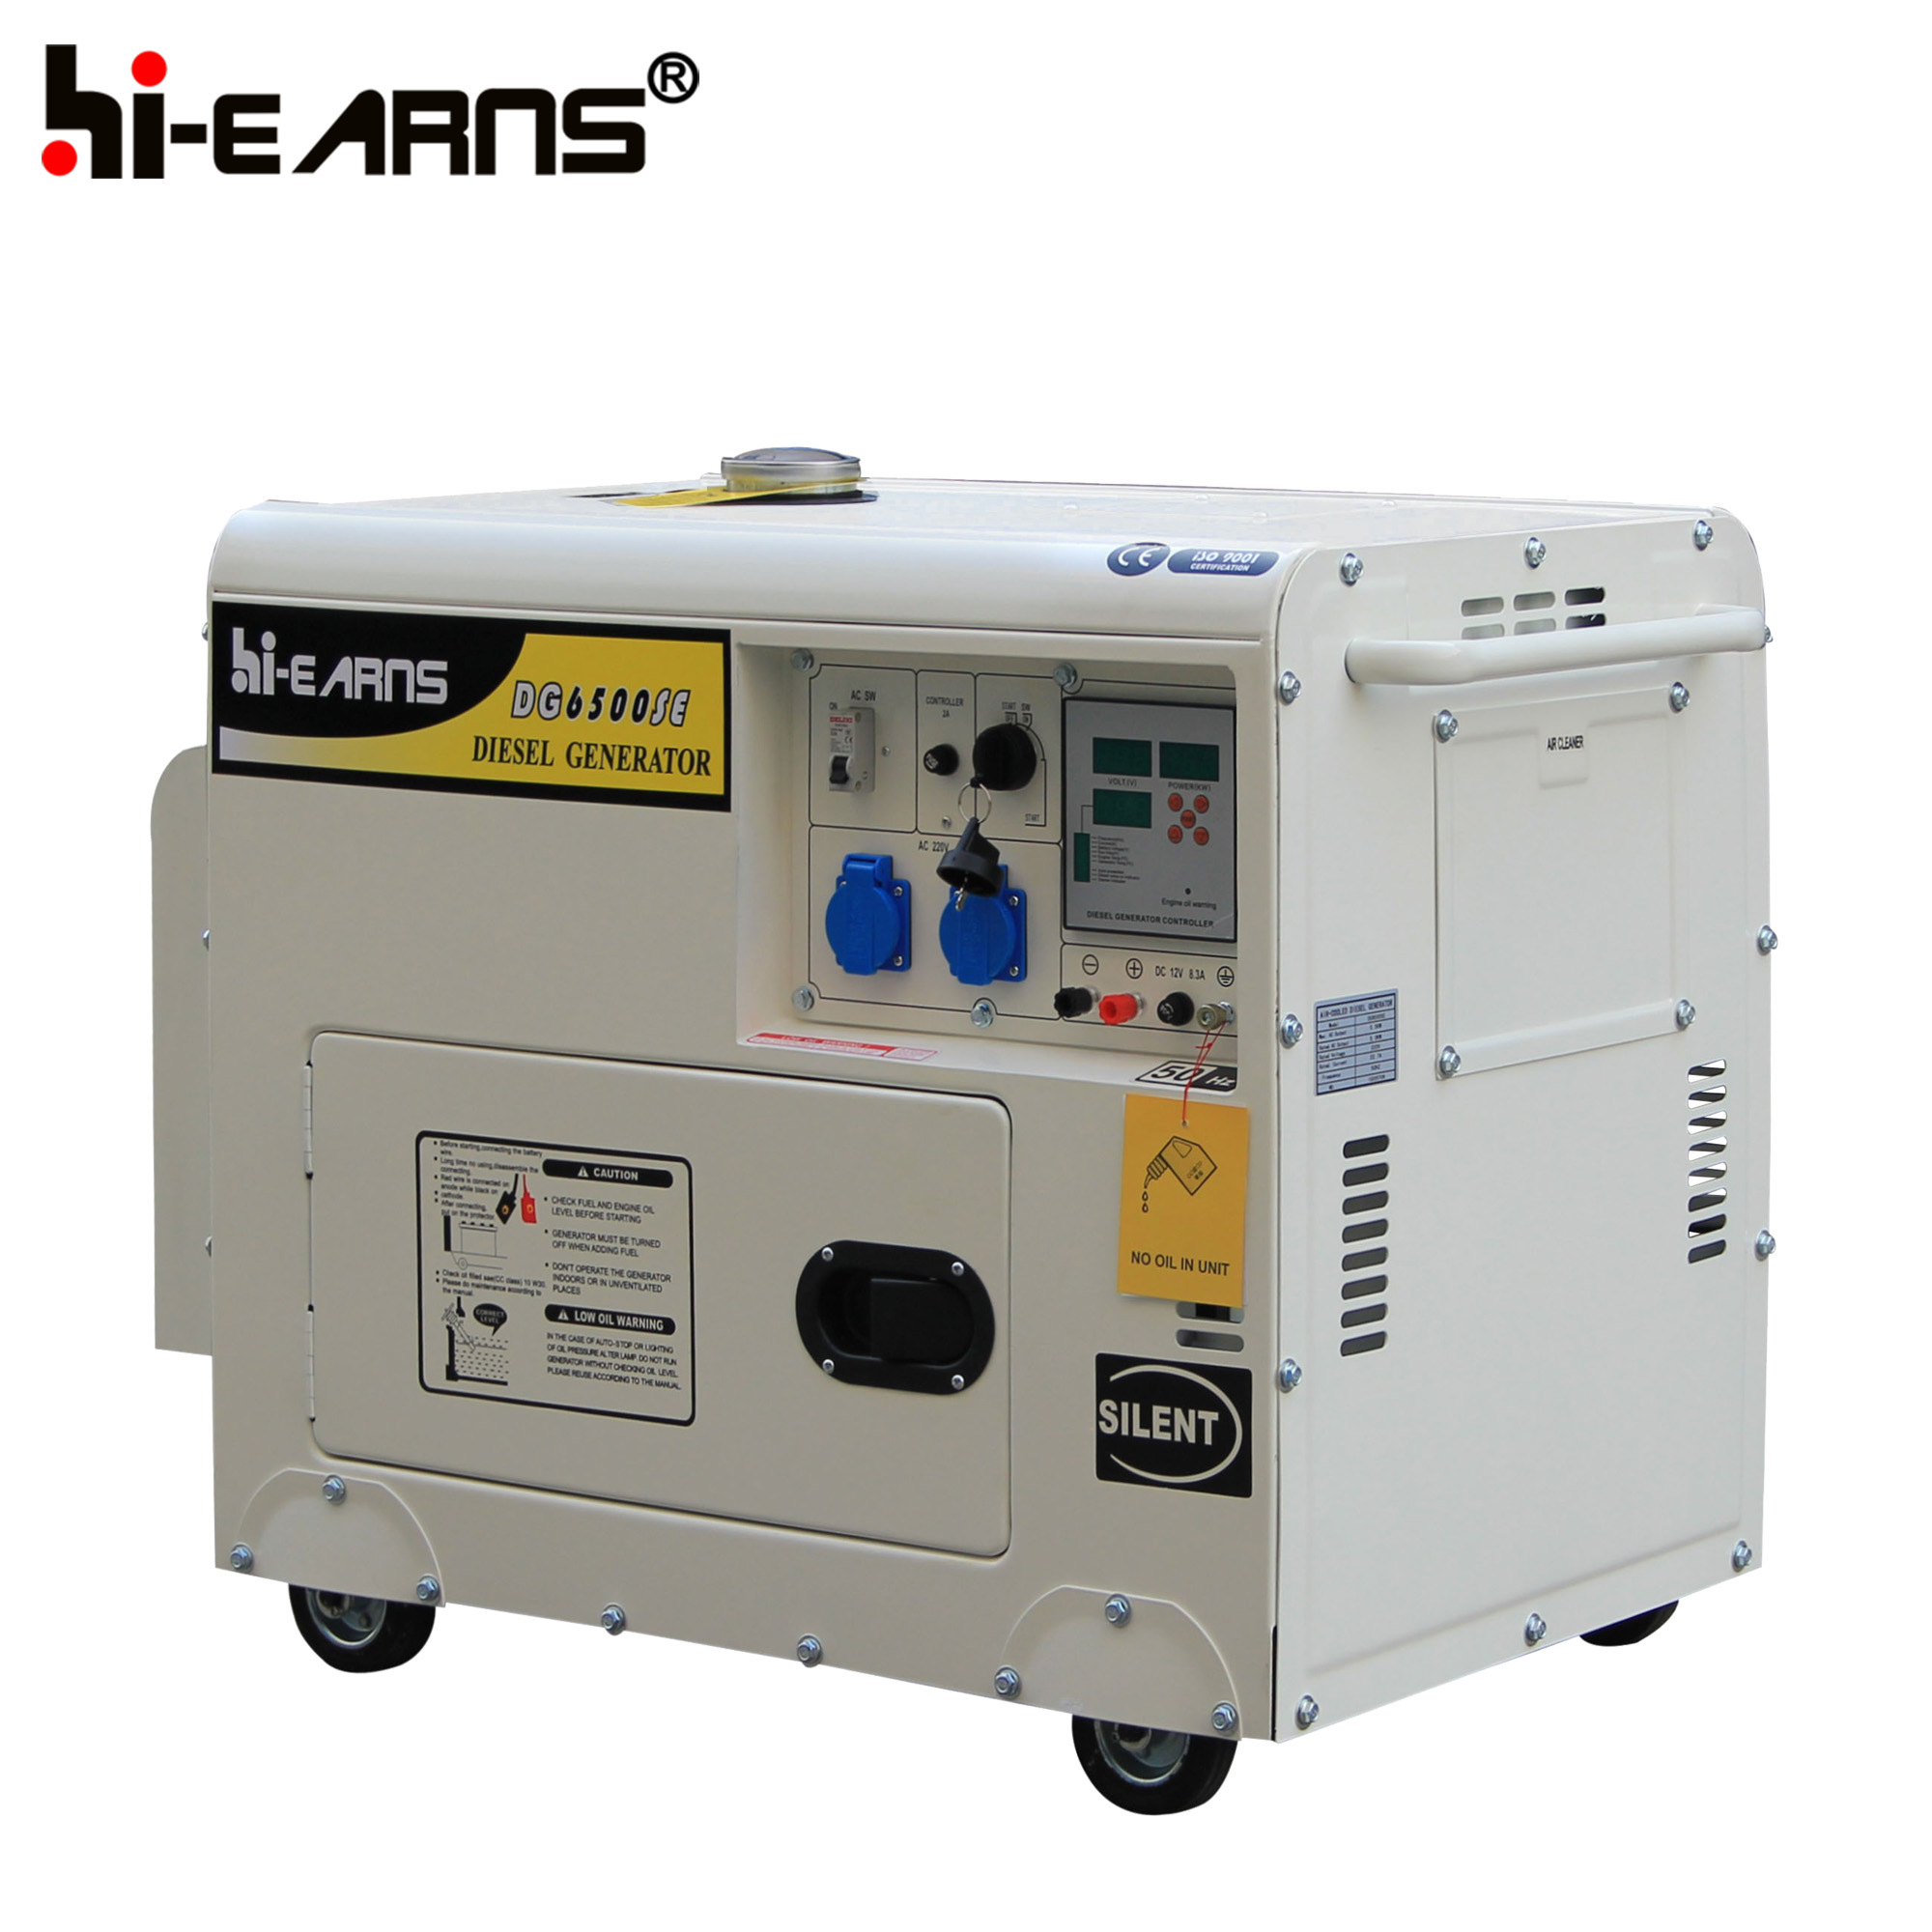 Air cooled Diesel Generator Series Changzhou Hi Earns Mechanical